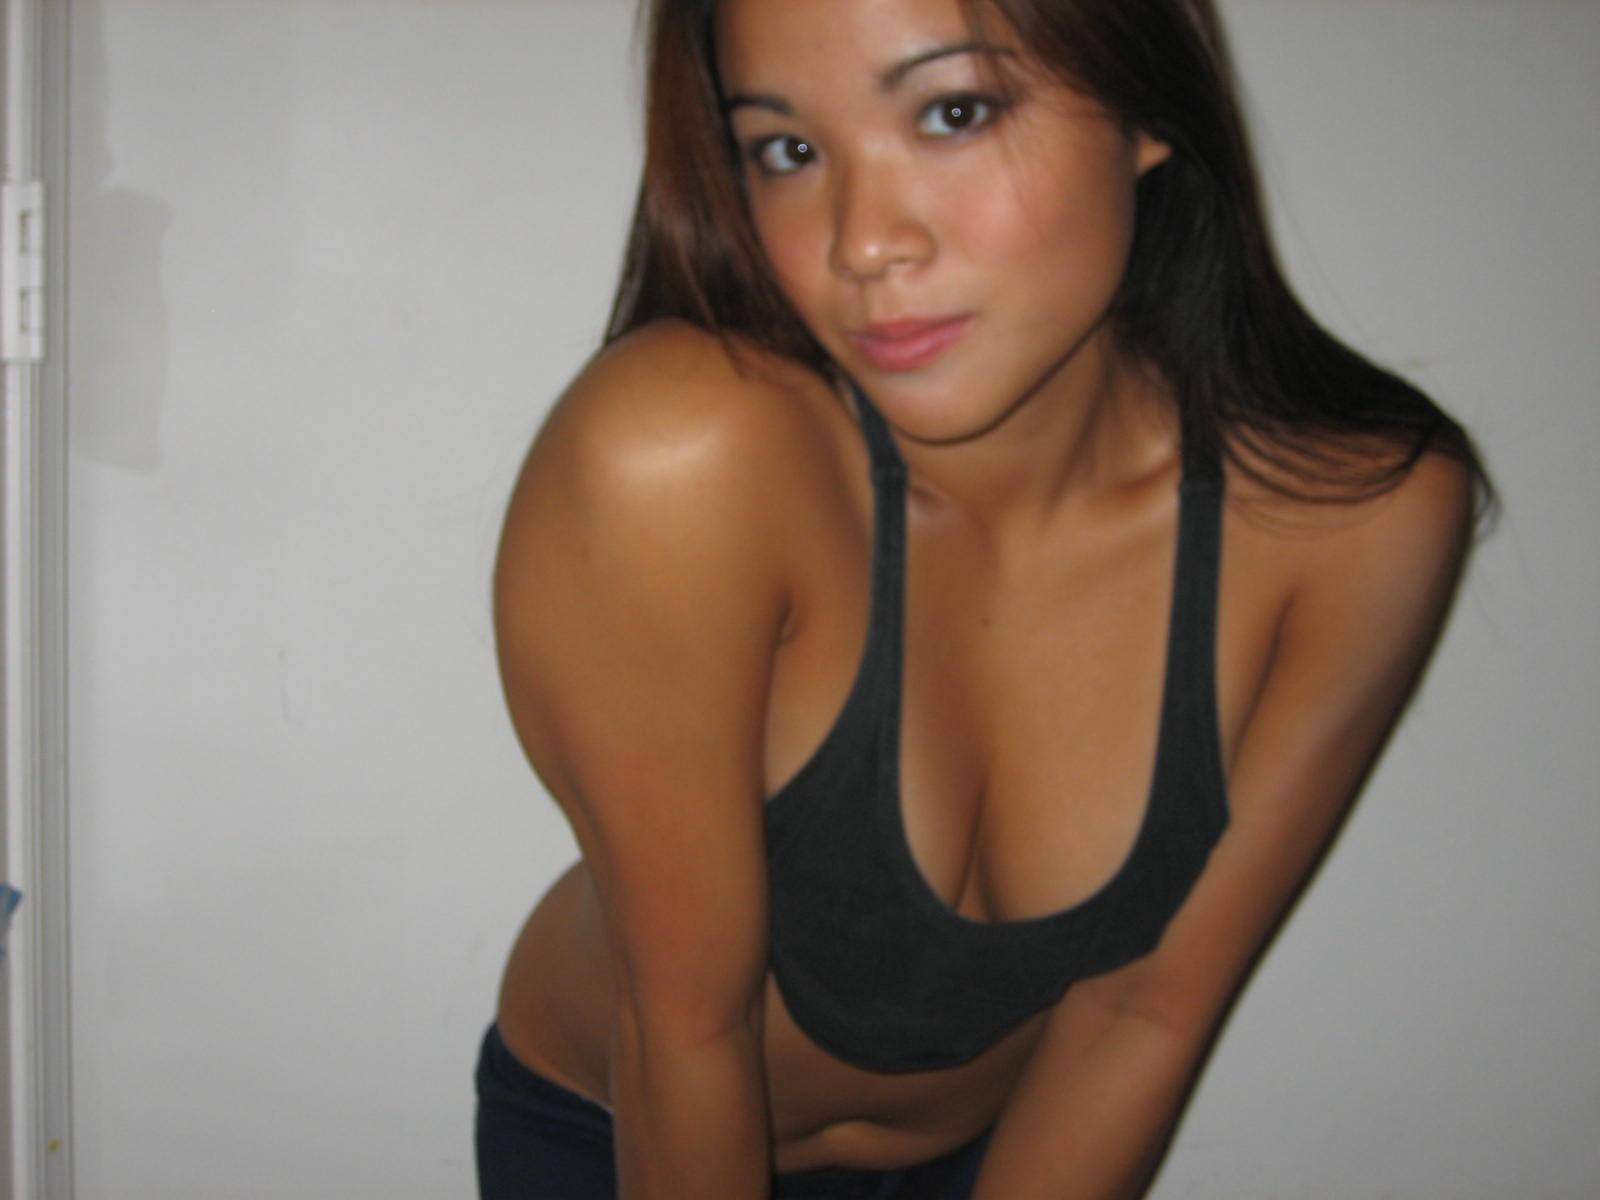 Ameture asian nude women suggest you